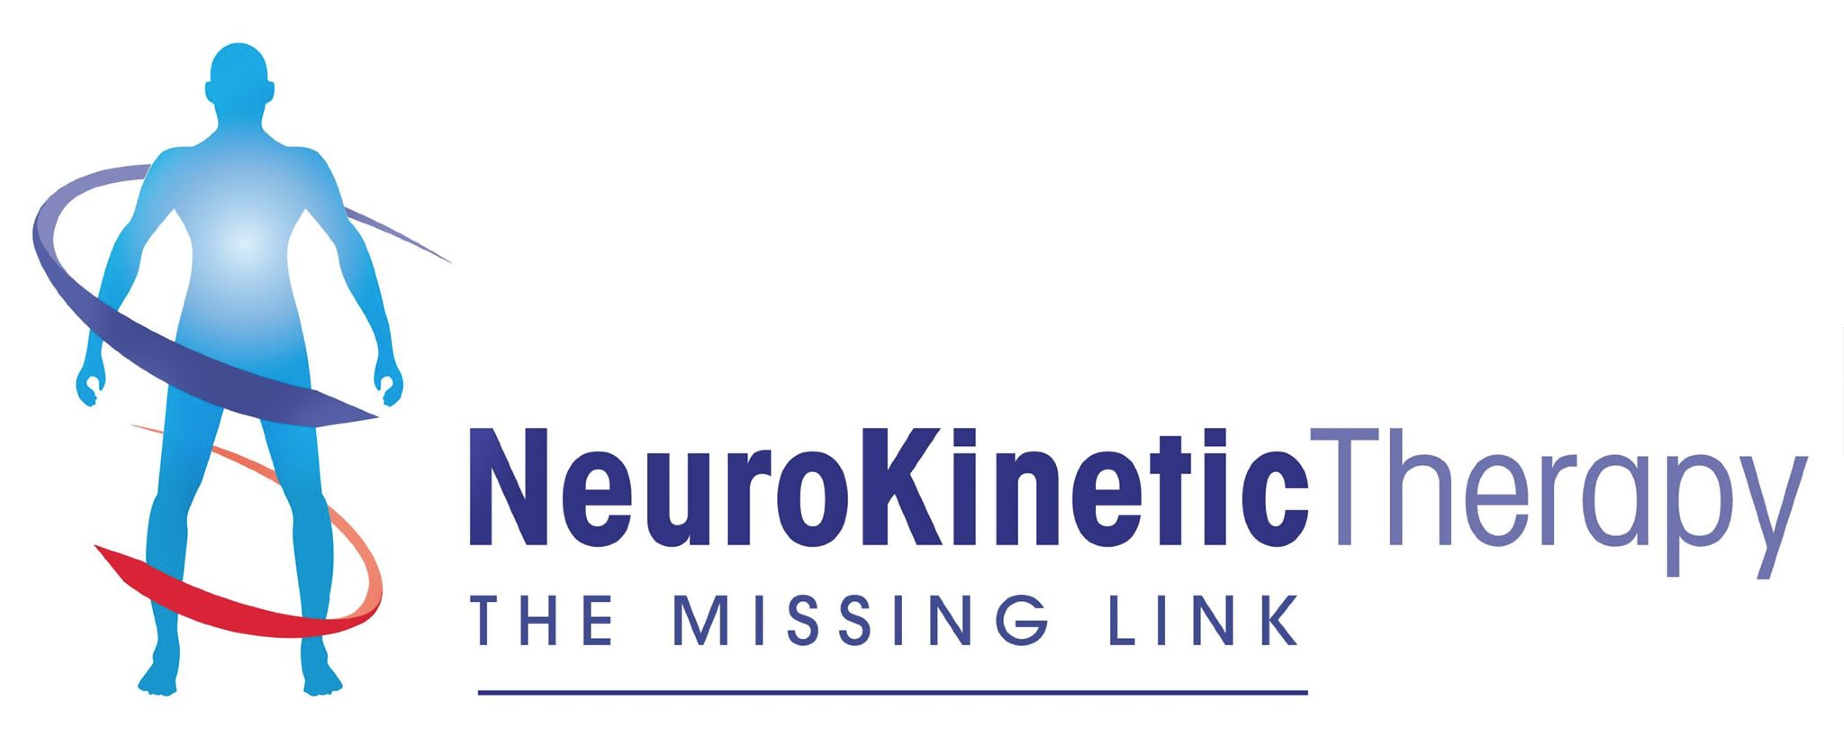 NeuroKinetic Therapy NKT 1 na Slovensku!